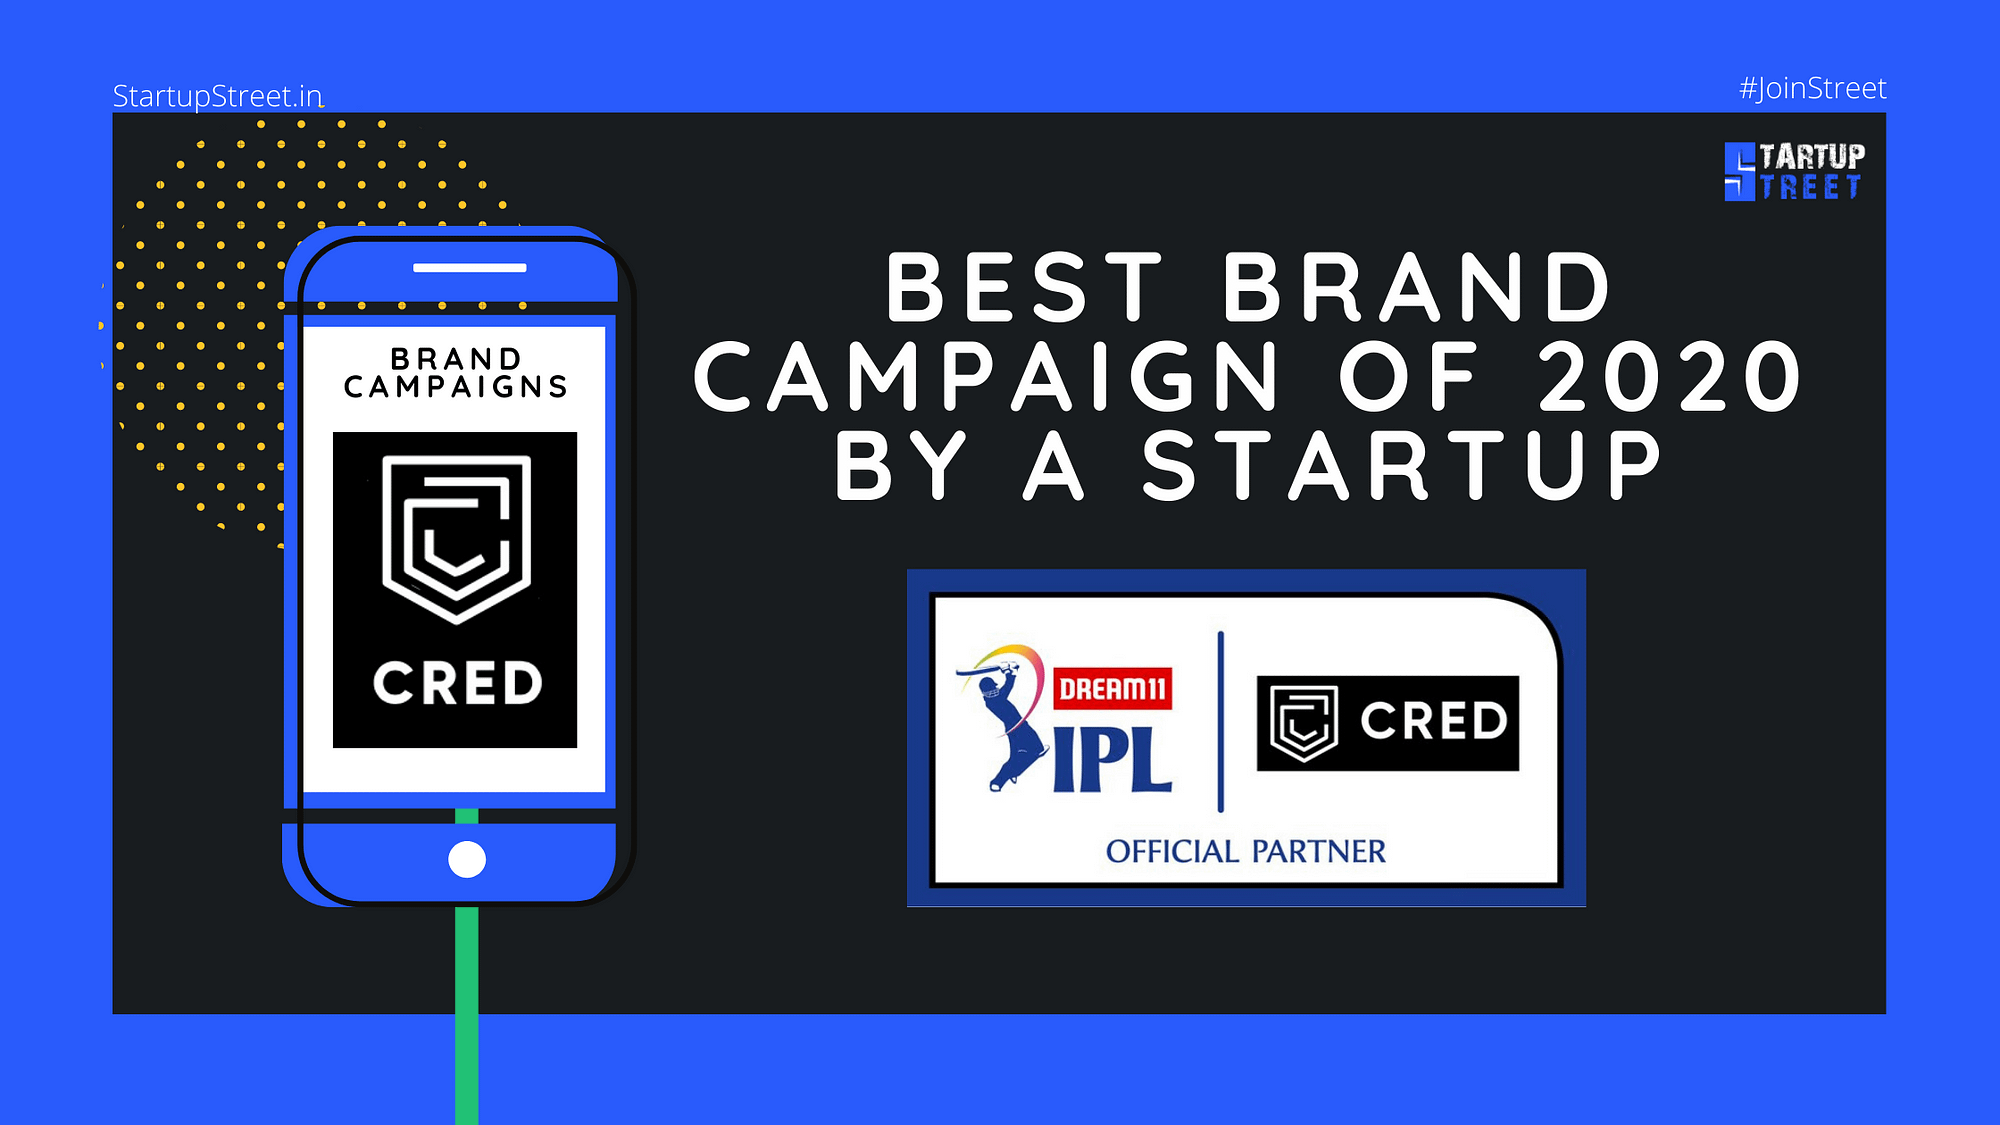 Best Brand Campaigns of 2020 - StartupStreet Blogs